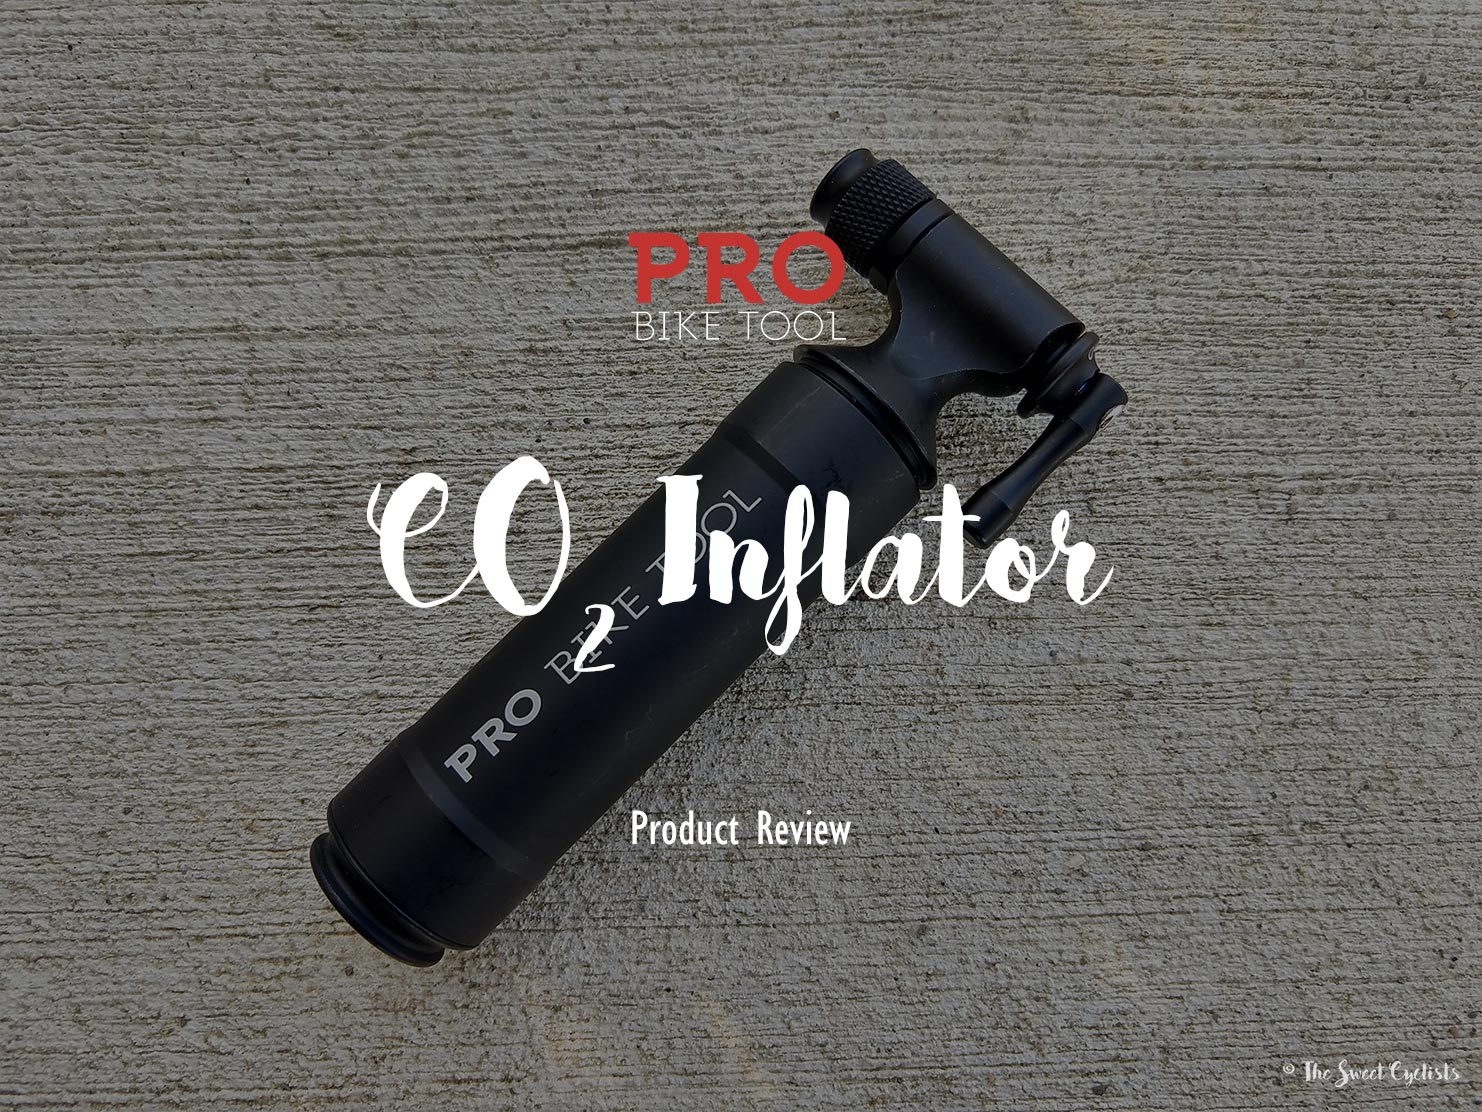 A compact CO2 inflator